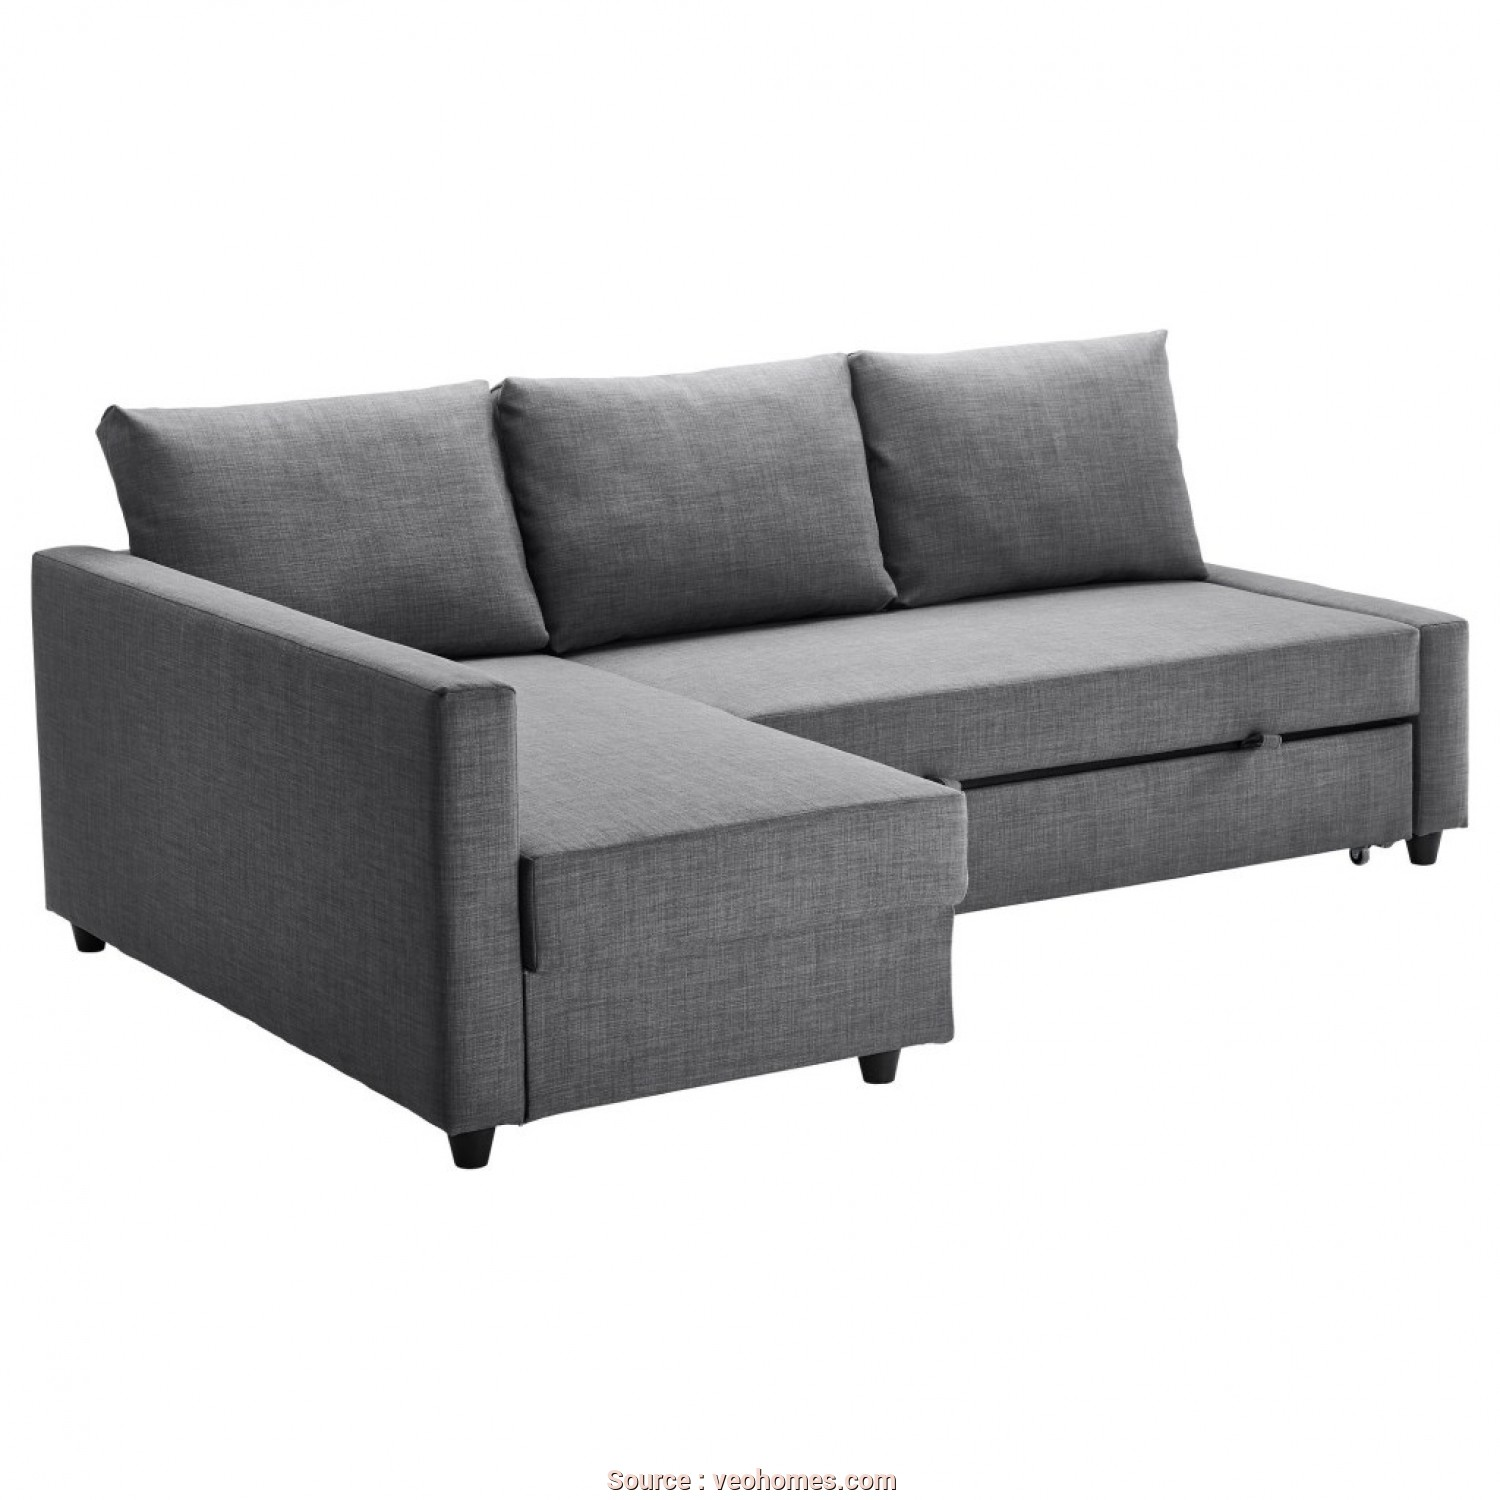 Ikea Klippan Sofa Uae, Favoloso The Most Incredible, Also Gorgeous L Shaped Couch Ikea